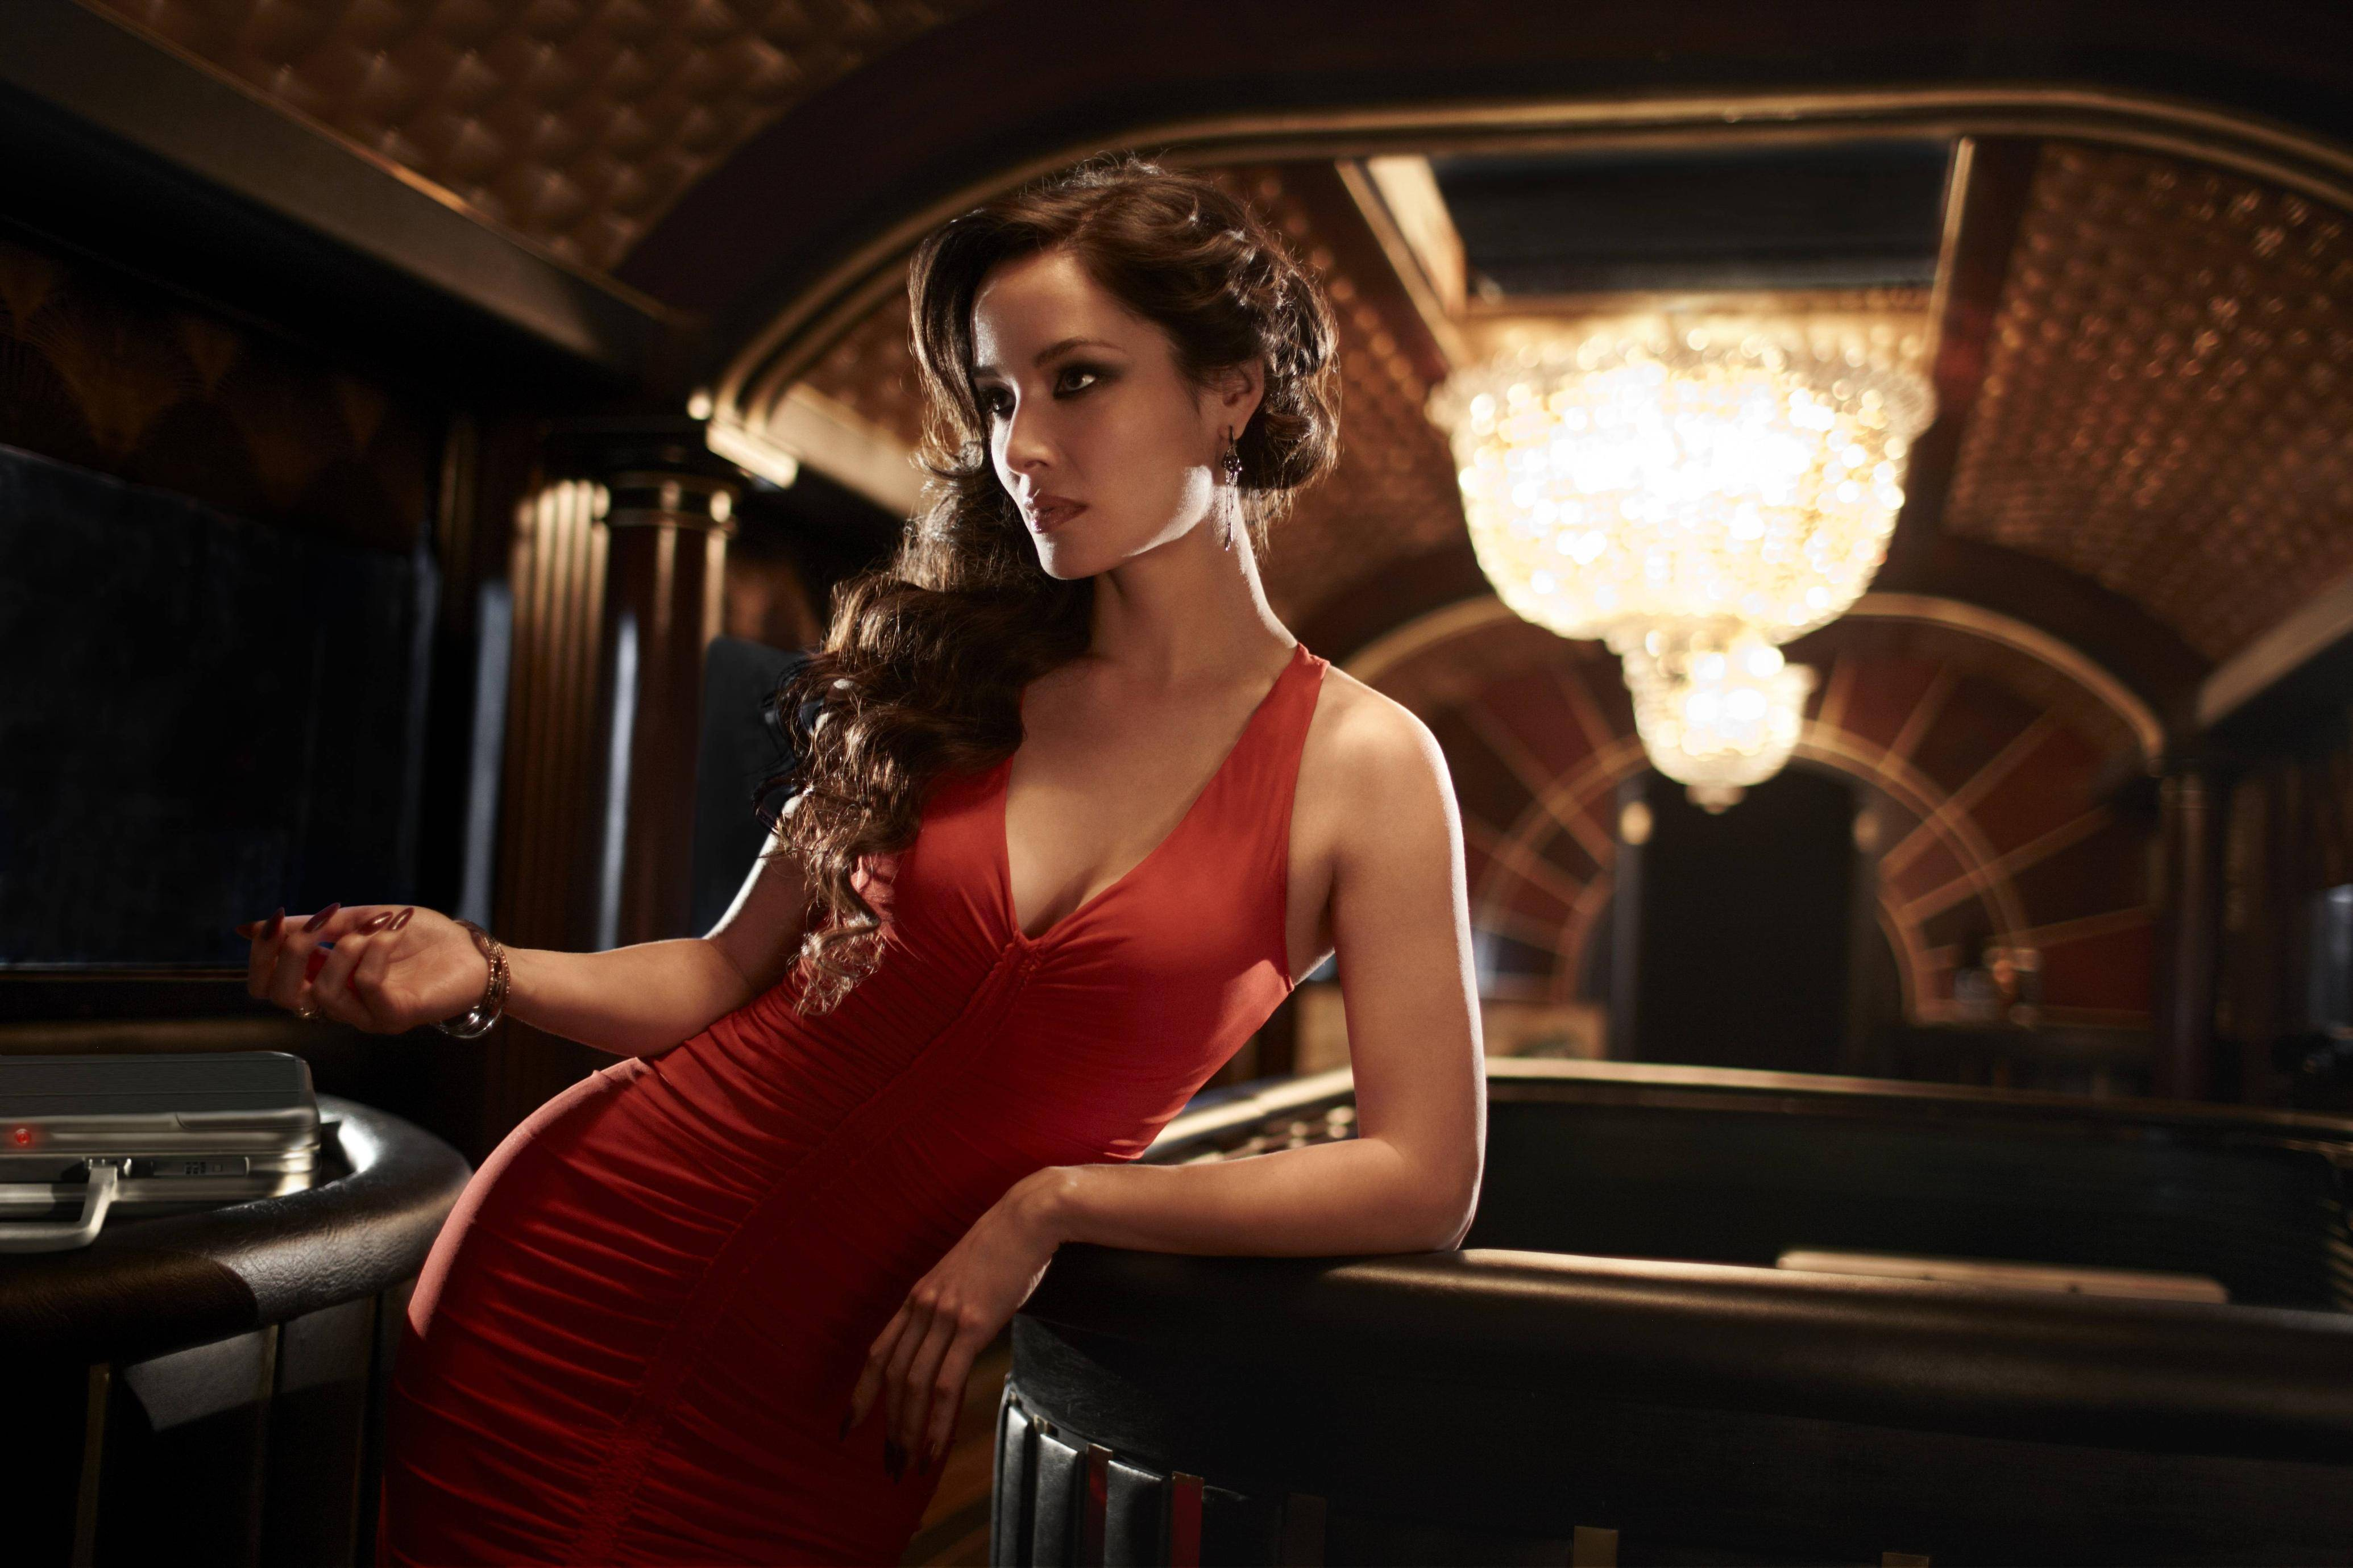 Casino Girl Wallpapers Top Free Casino Girl Backgrounds